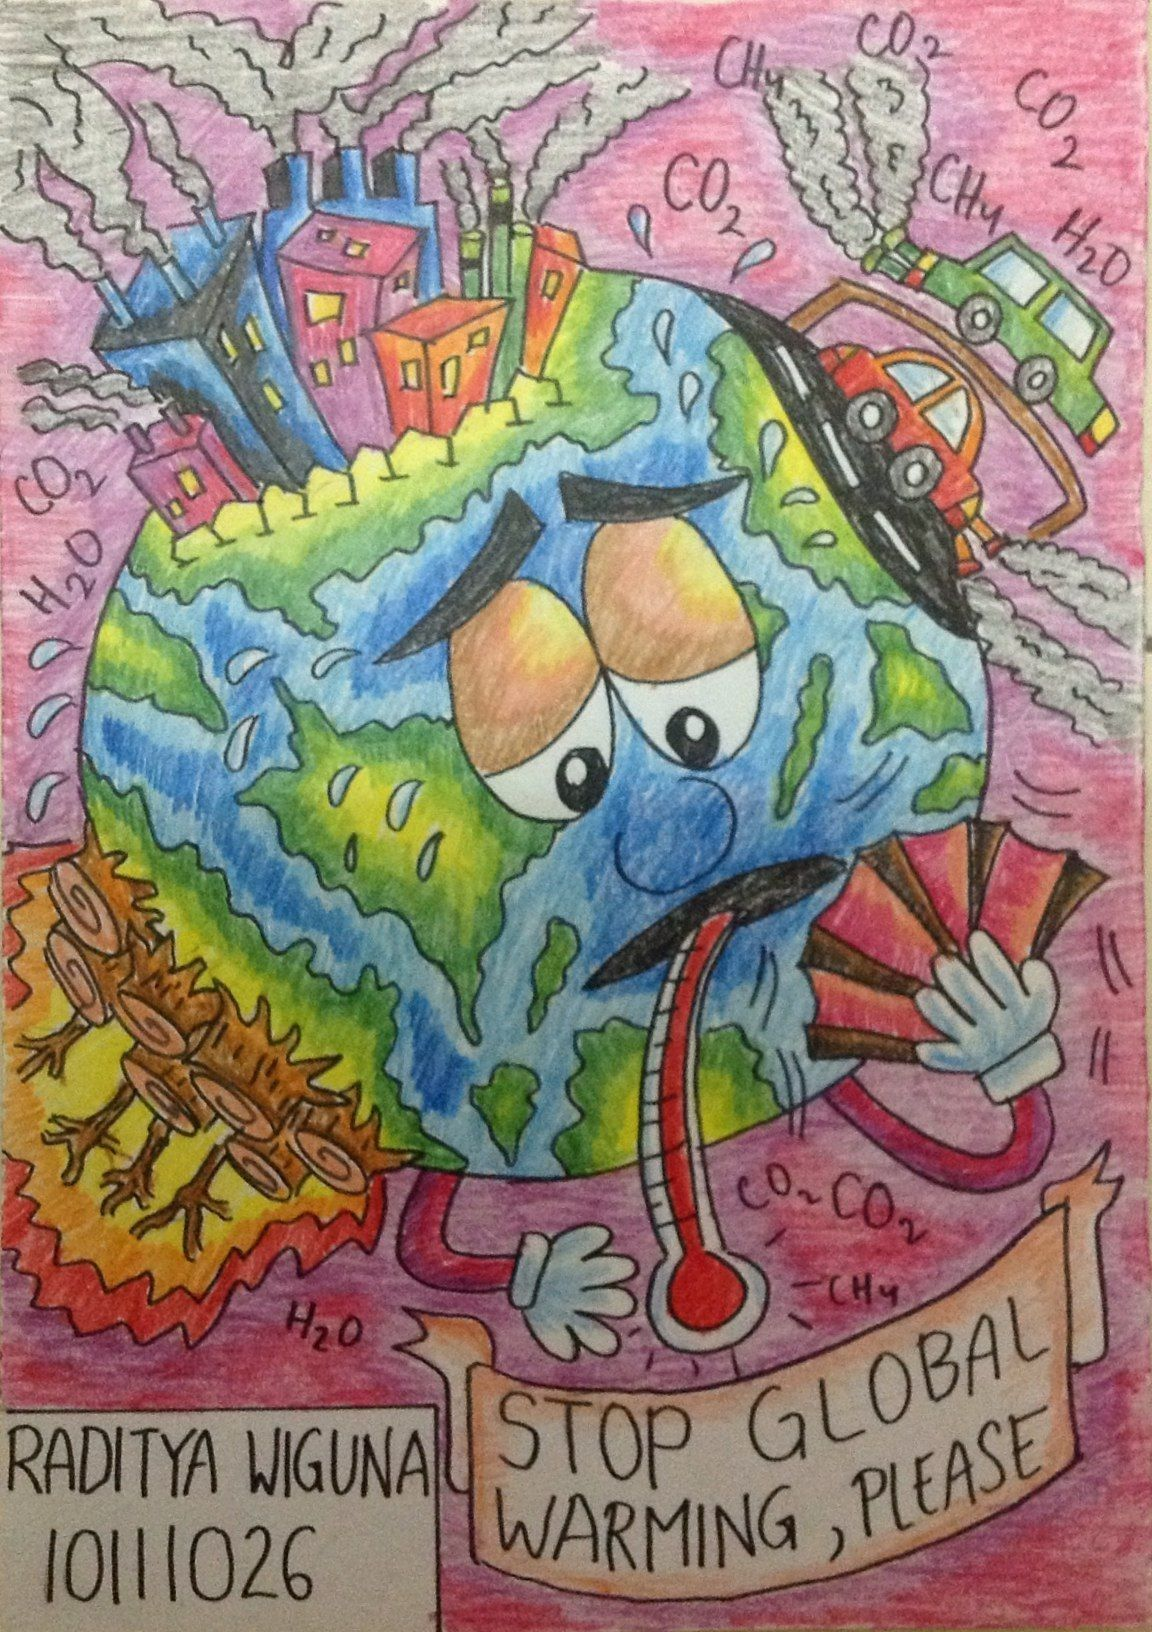 Gambar Poster Global Warming : gambar, poster, global, warming, Fahrul, Simpan, Earth, Drawing,, Water, Poster, Drawings